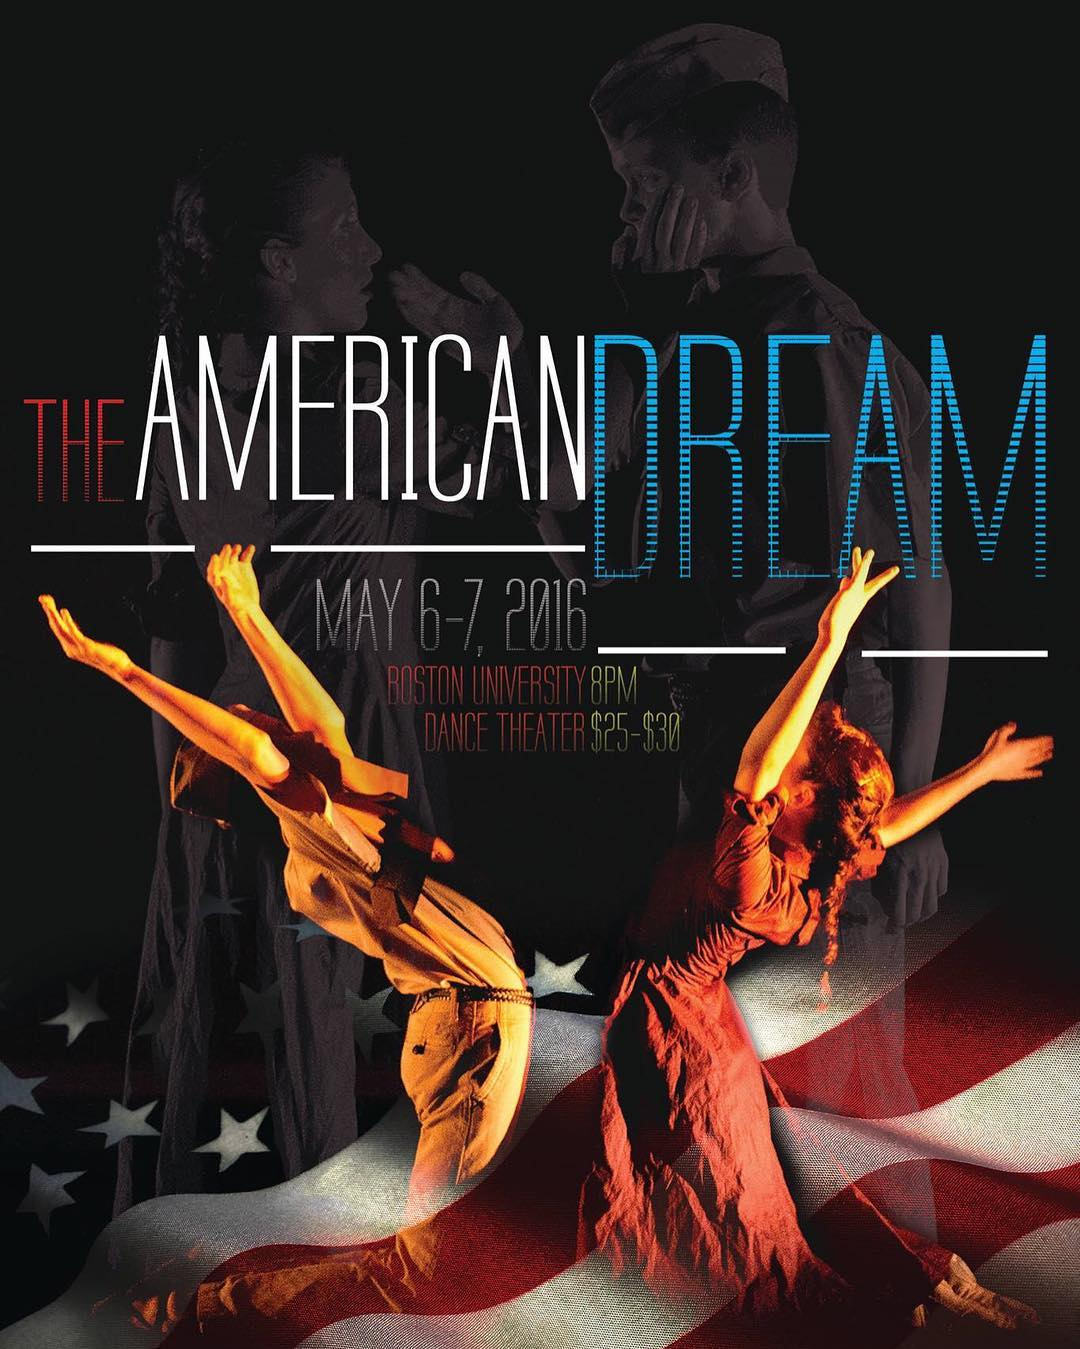 Boston University Dance Program: The American Dream: Expressions Of Hope And Struggle In